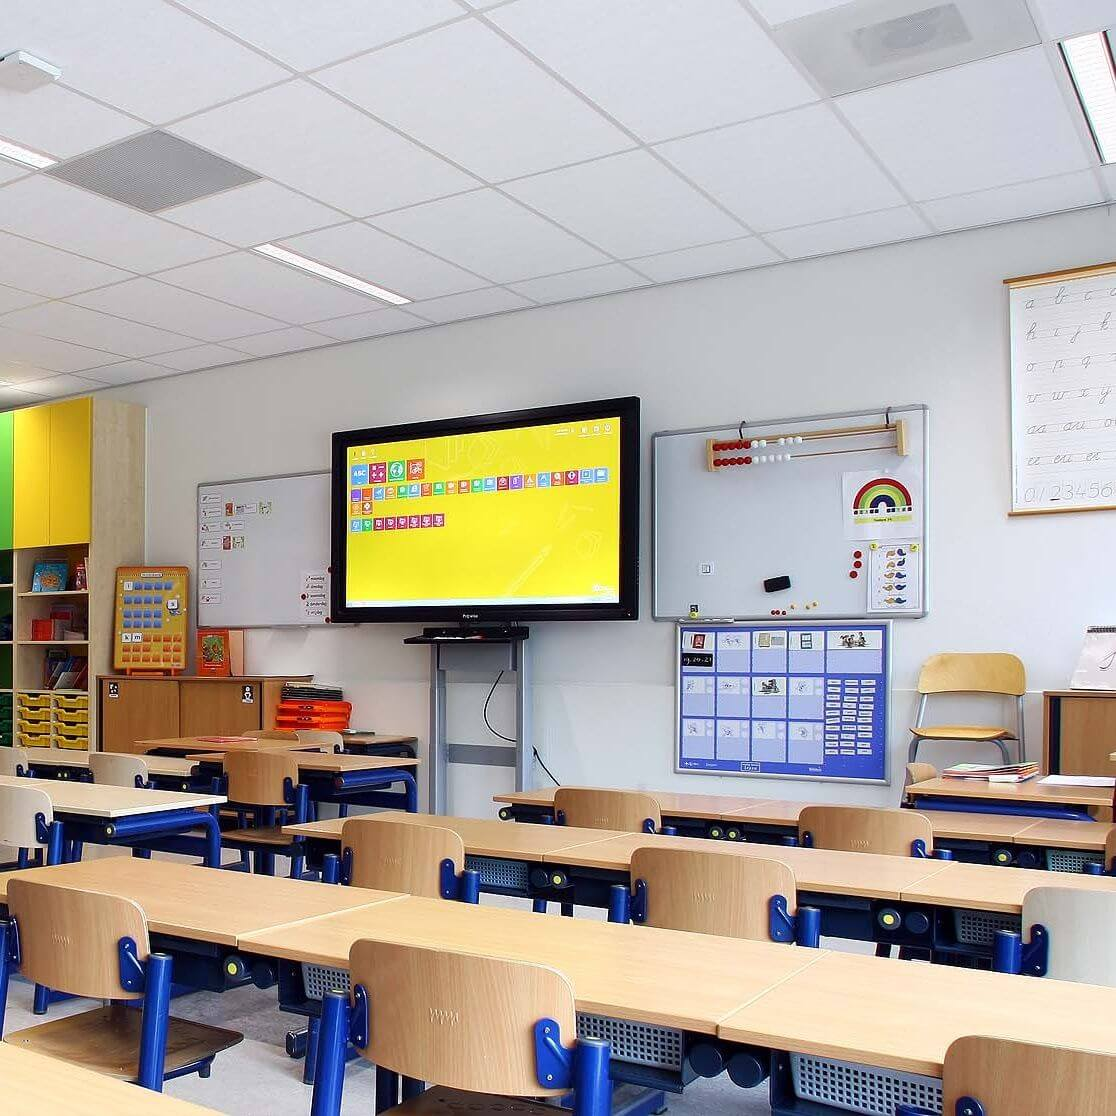 Schools<em>Learn and perform better with AMMANU lighting solutions</em>